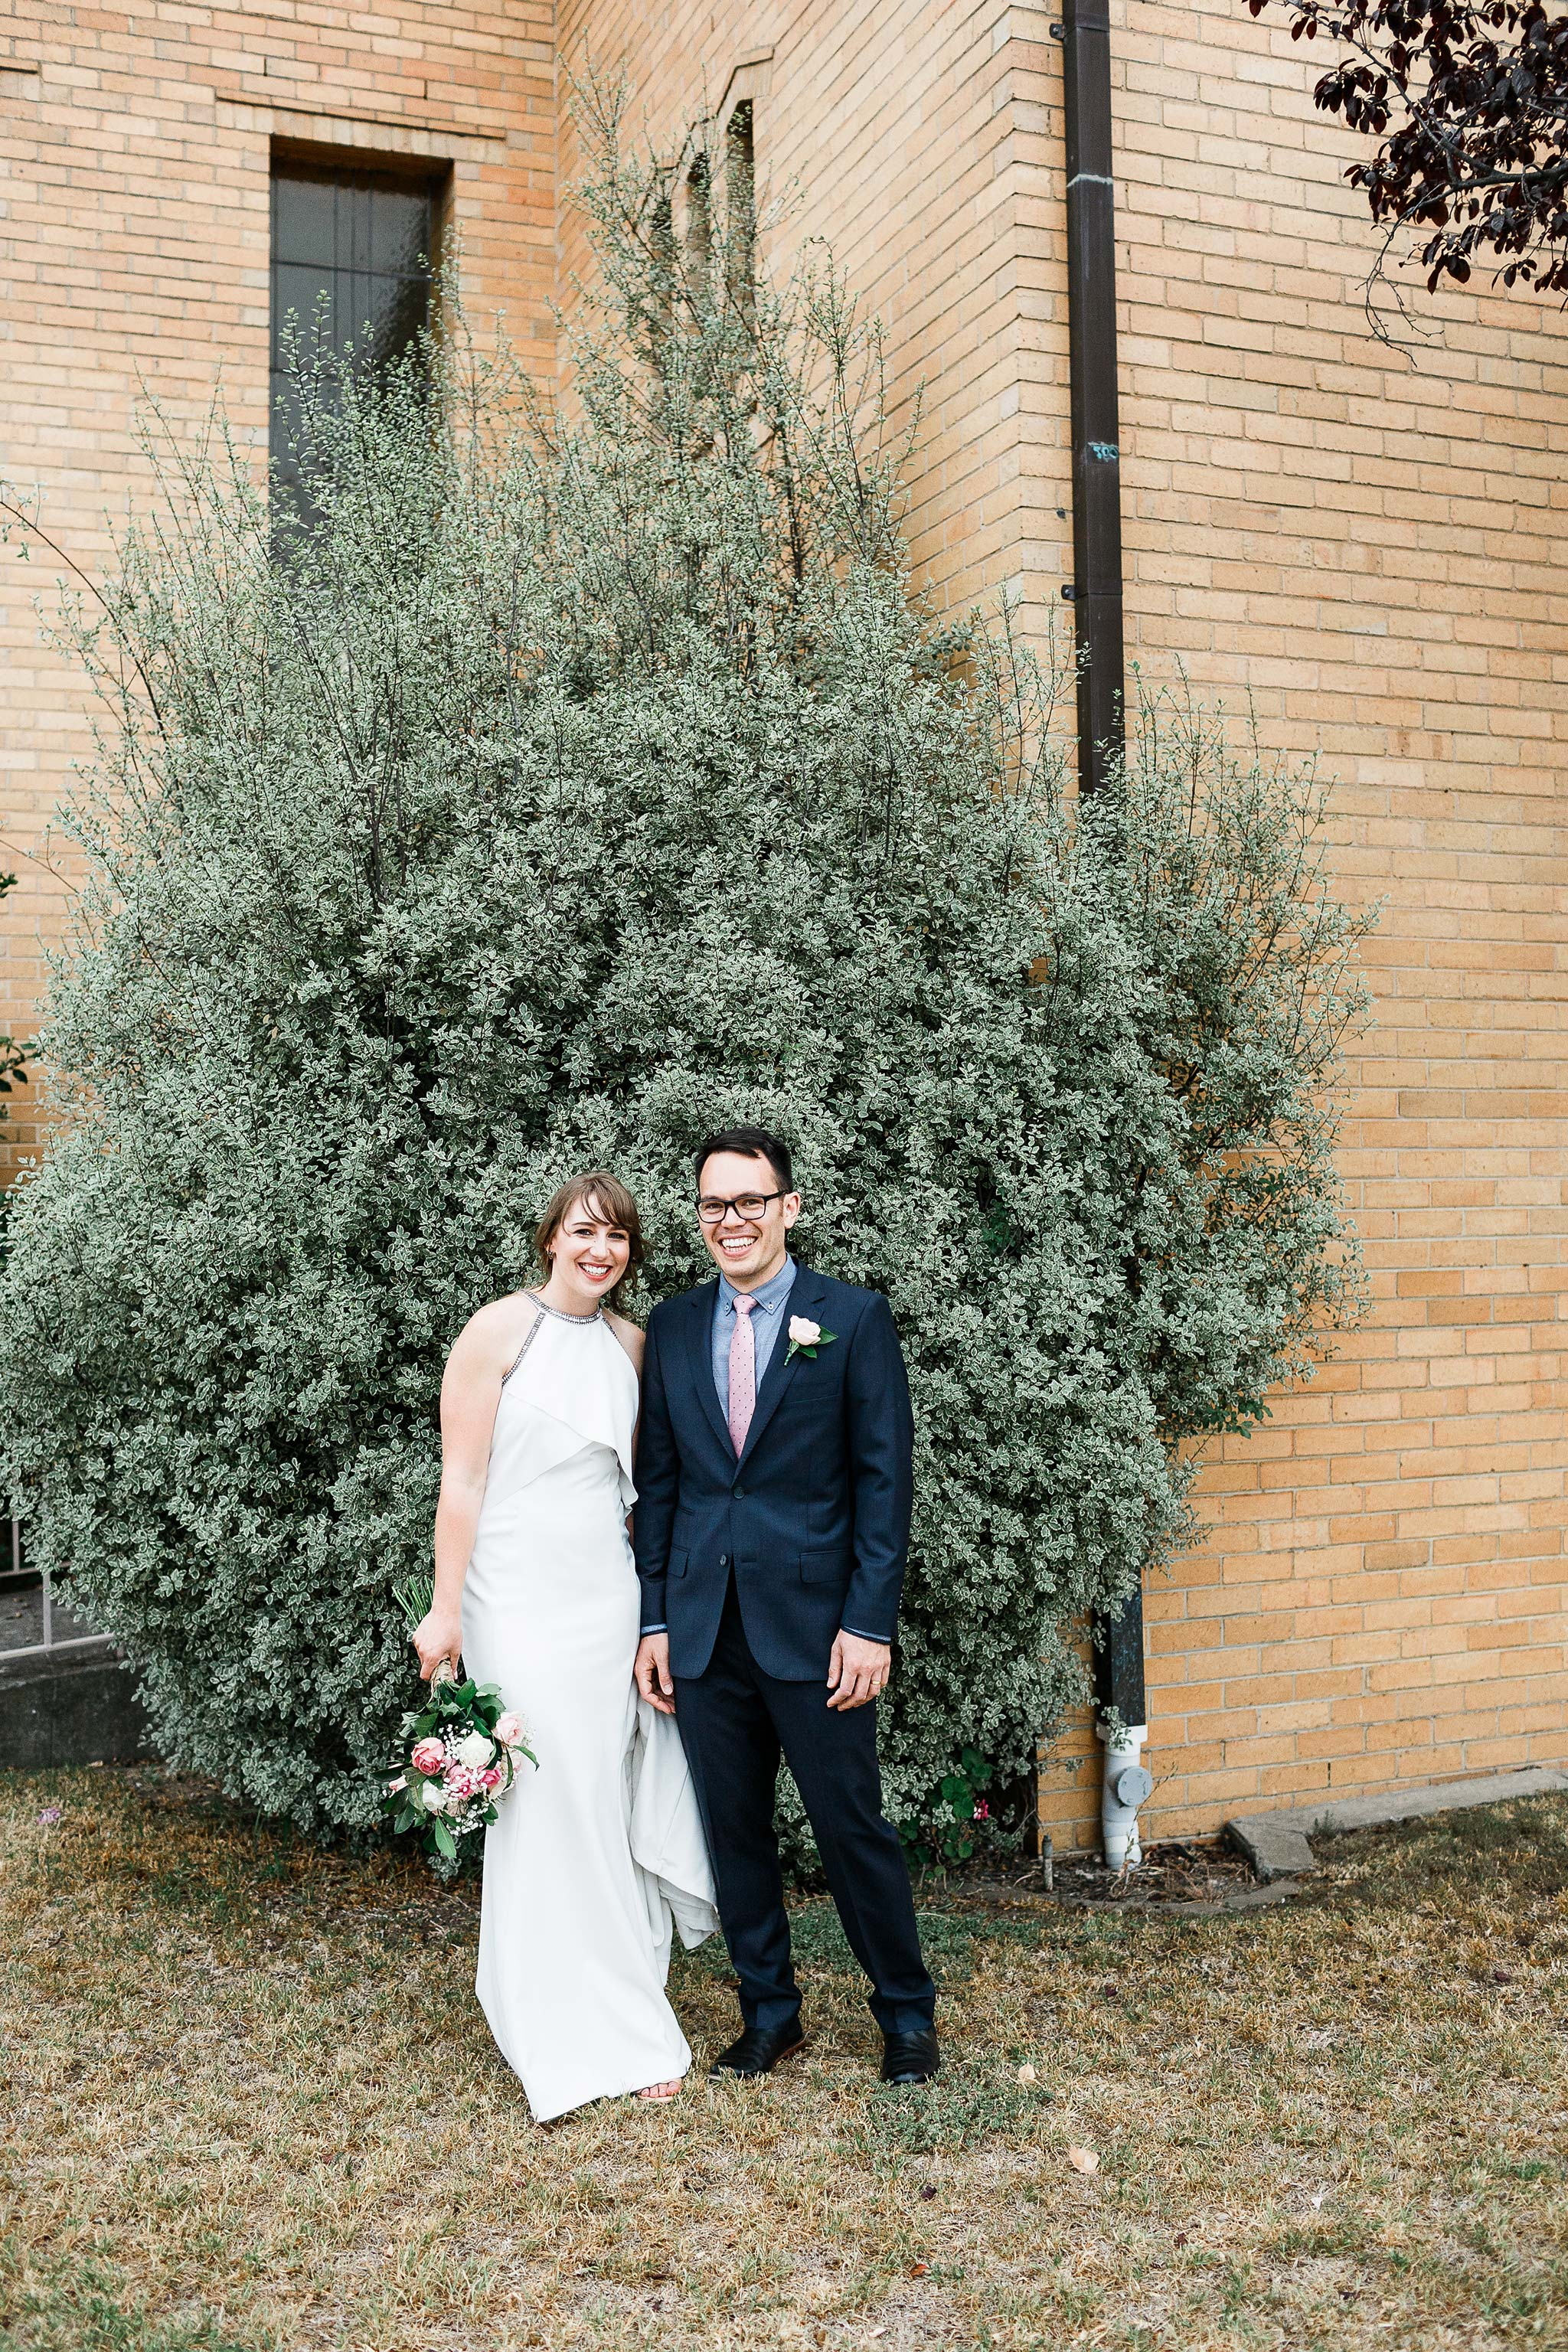 Strathmore-Melbourne-Backyard-Wedding-bride-groom-tree